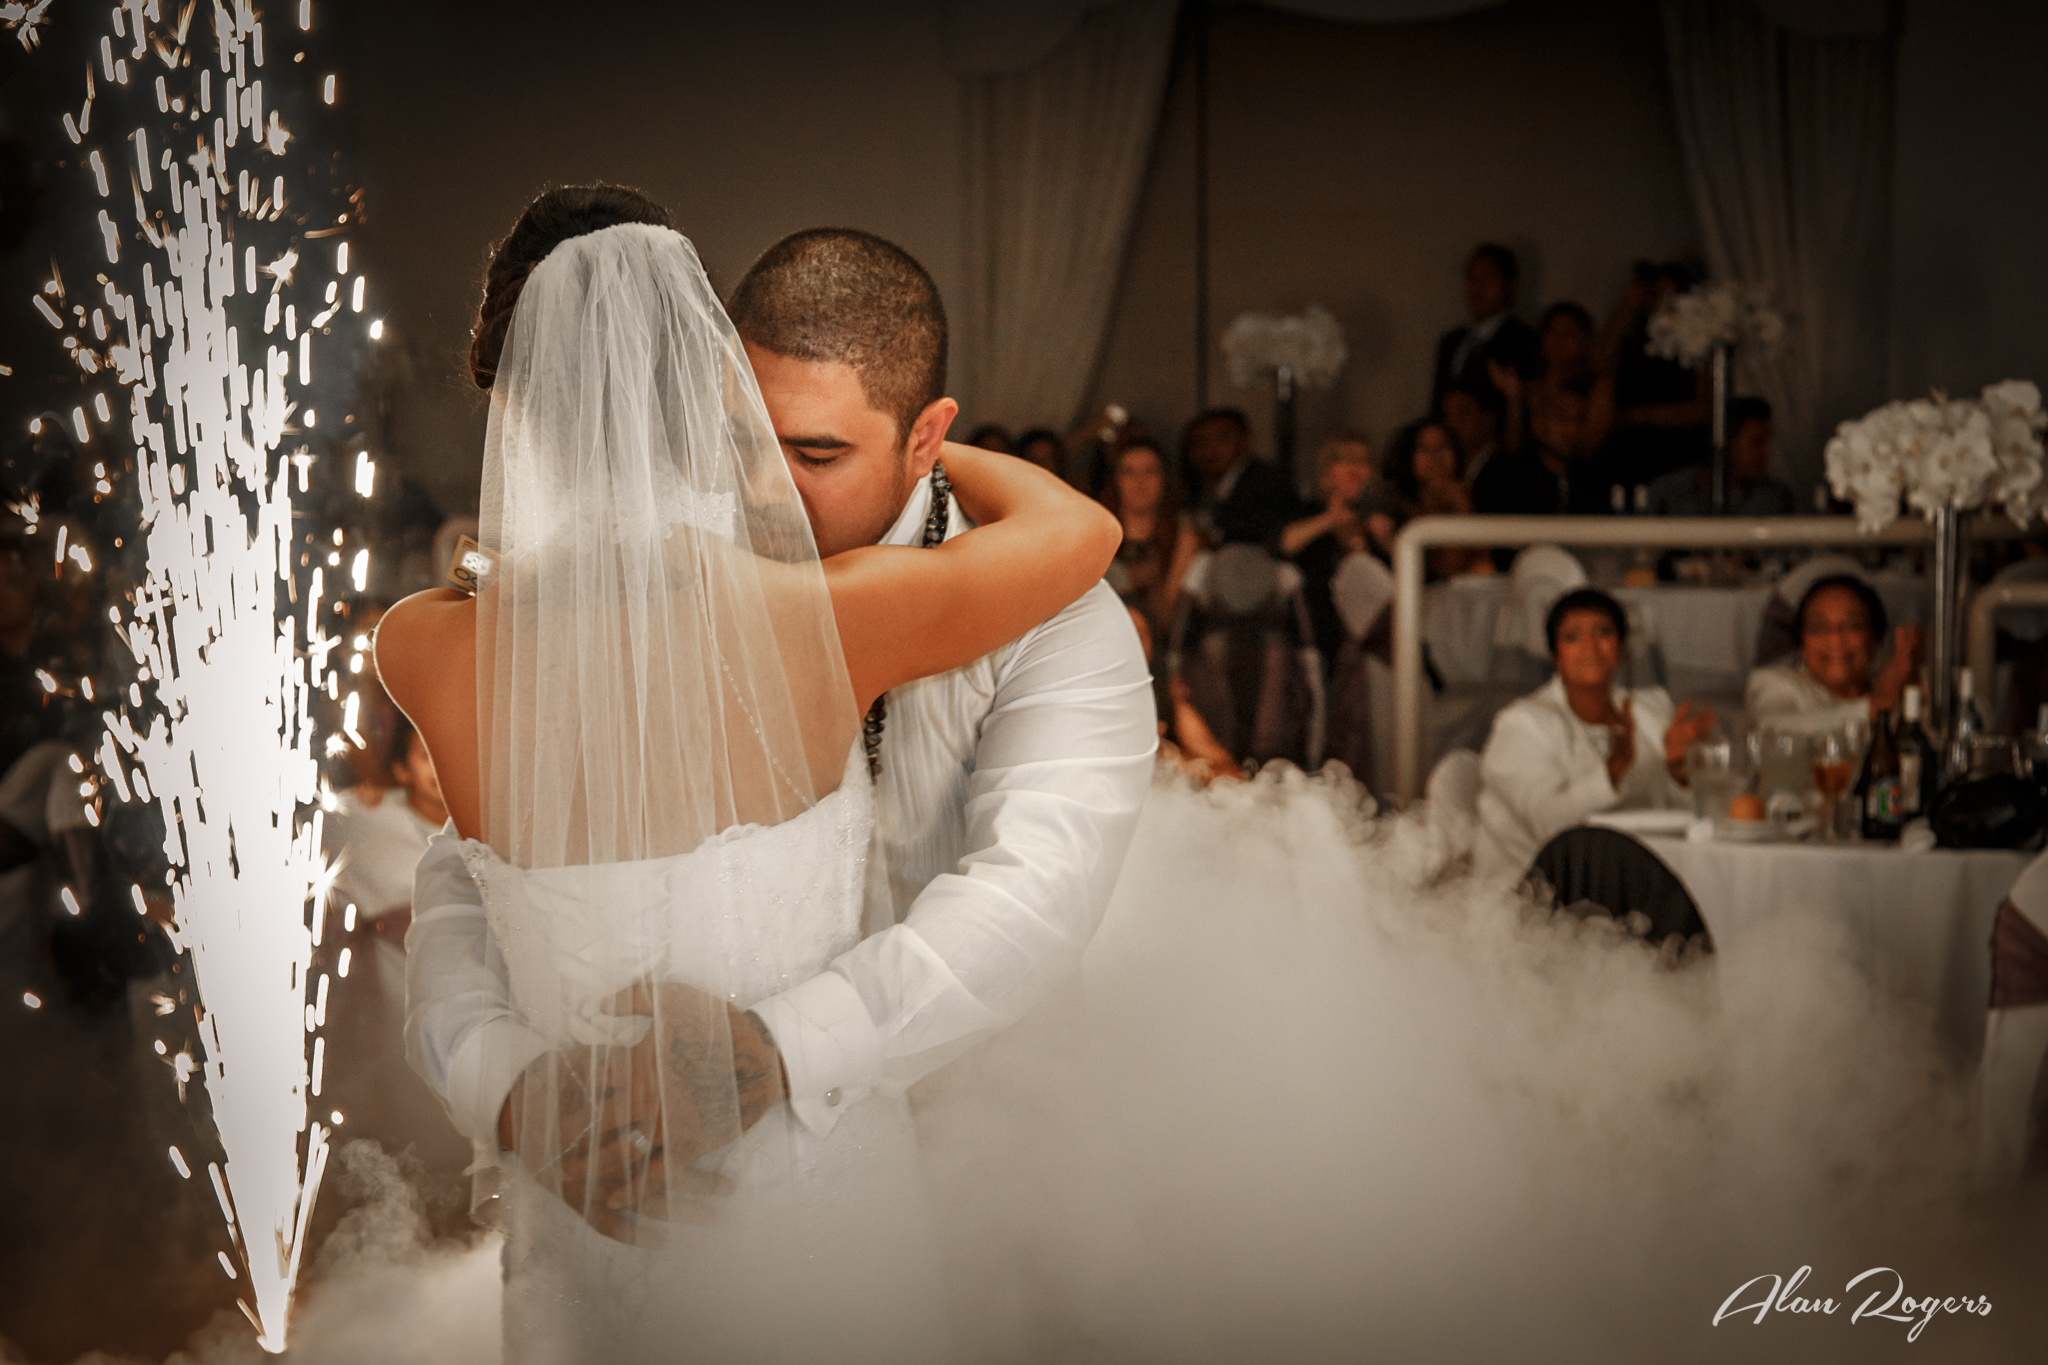 Smokey First Dance